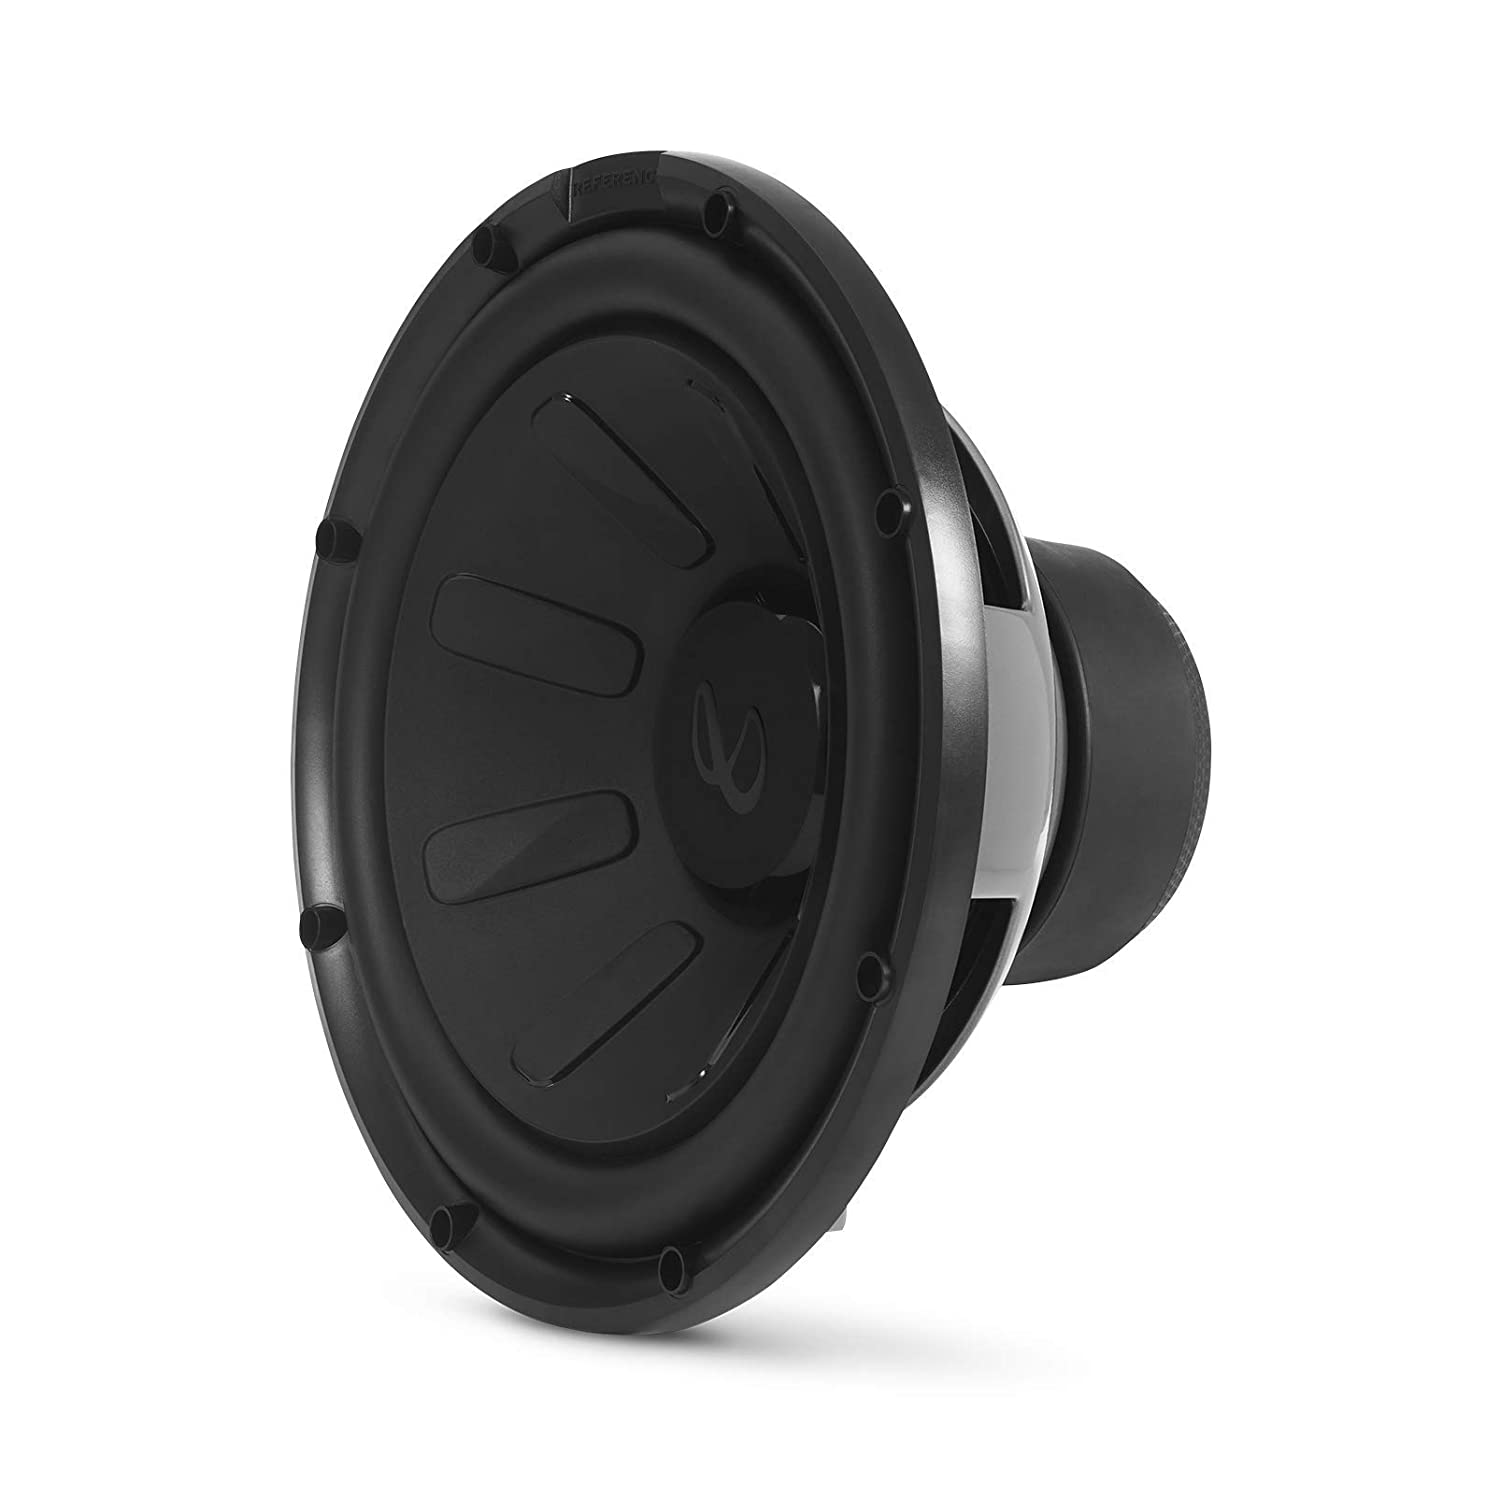 Infinity REFERENCE-1270 Reference 12 Inch Subwoofer with SSI Selectable Smart Impedance